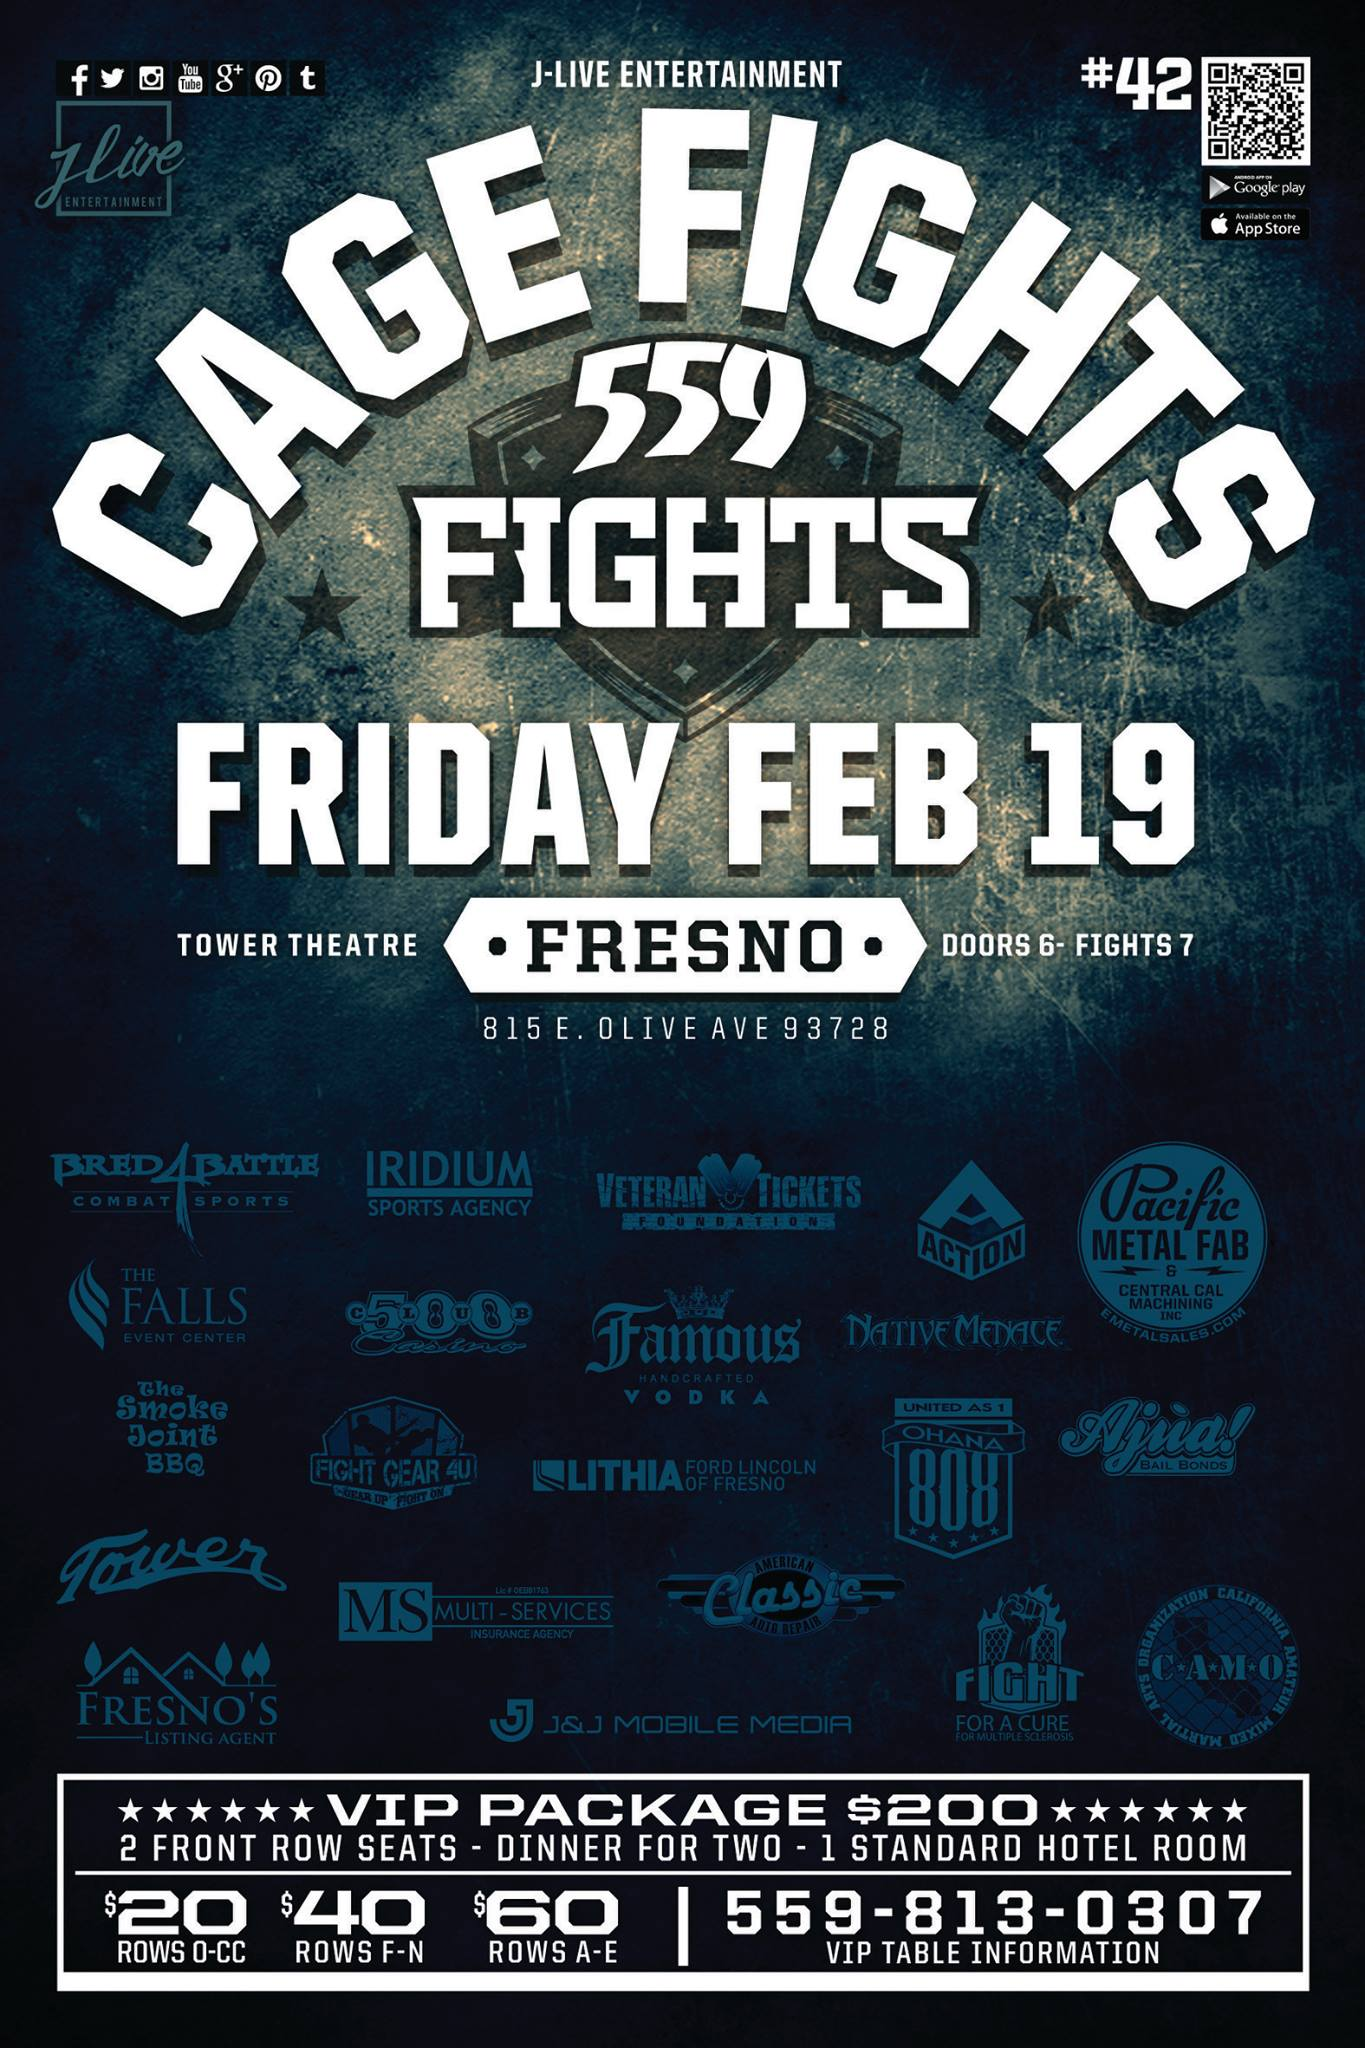 559 Fights Poster